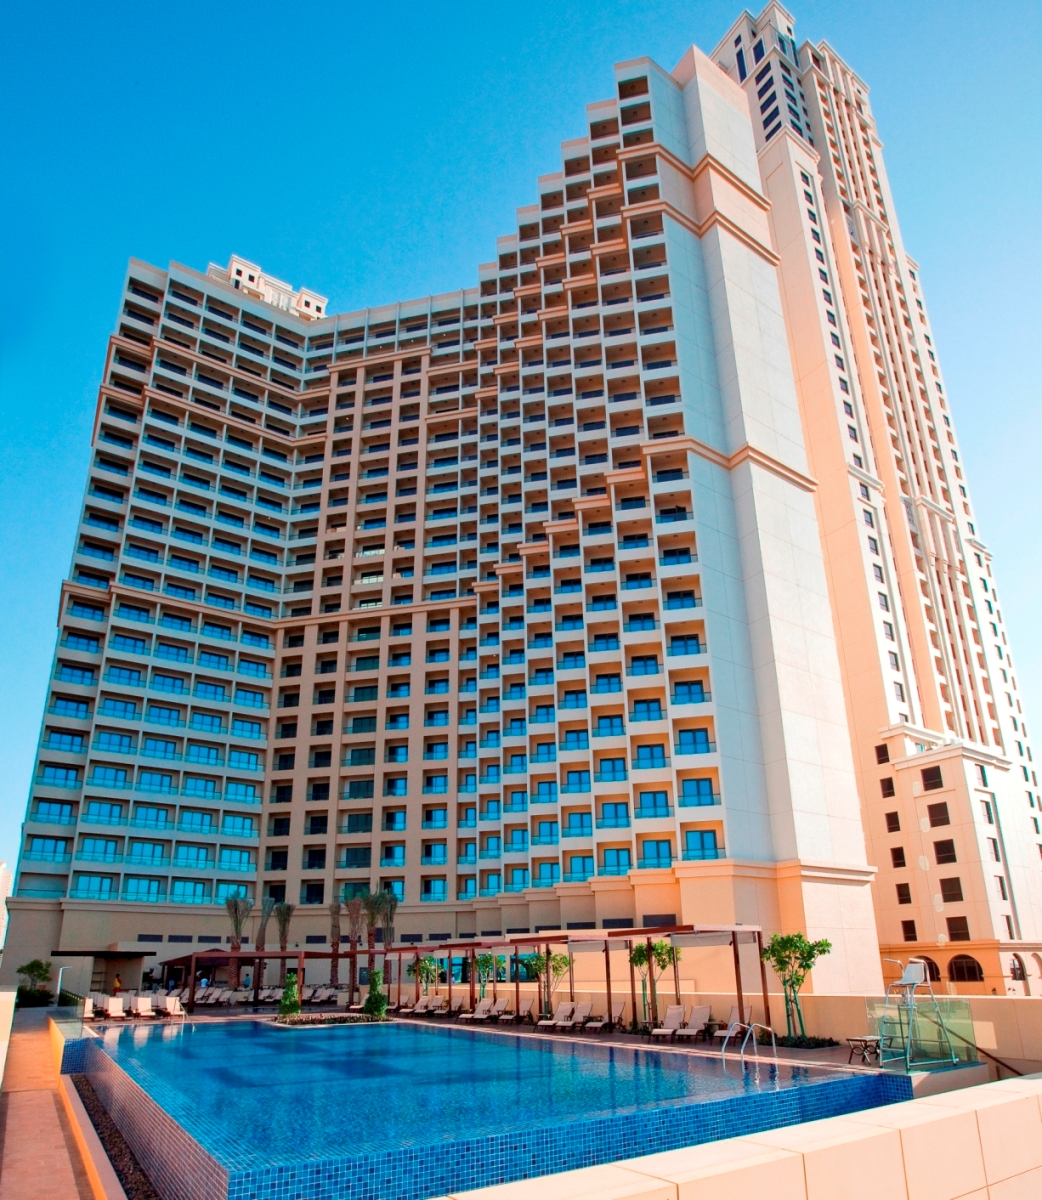 Ja Resorts Hotels Launches Travel Advice Initiative As First Phase Of Property Training Programme Next To Target Ksa Market